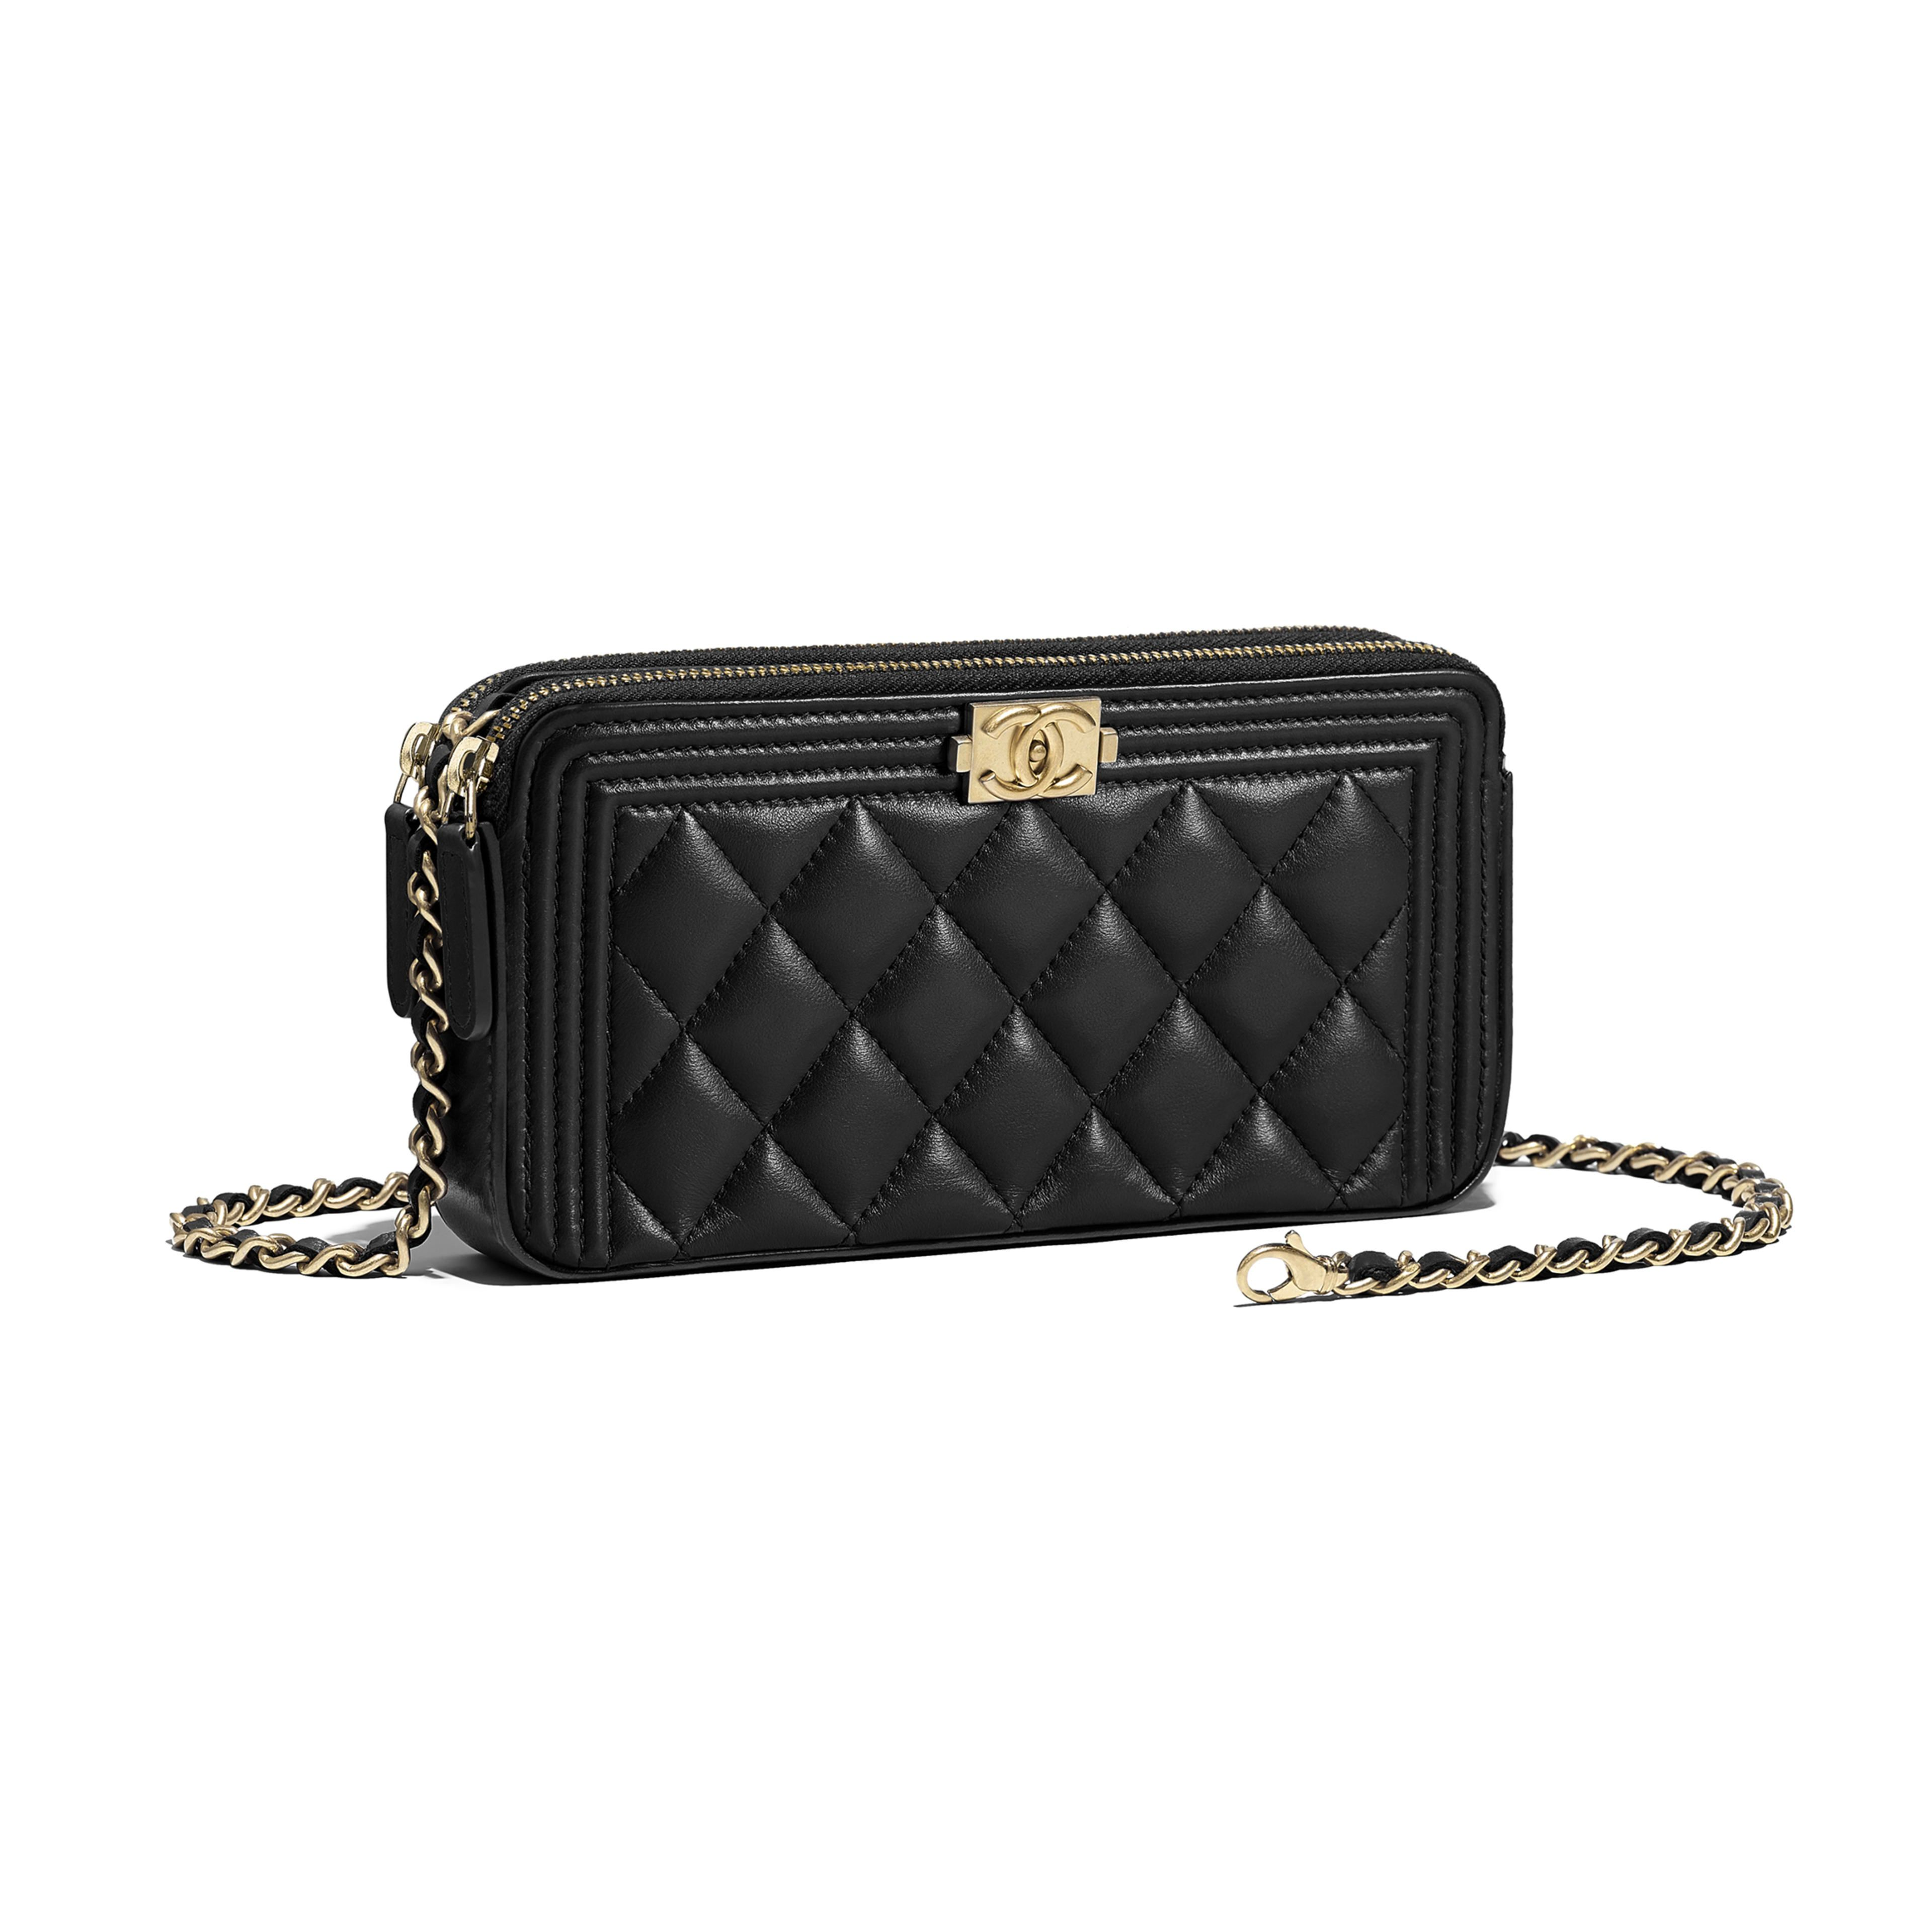 89ec88c024 Lambskin & Gold-Tone Metal Black BOY CHANEL Clutch with Chain in ...